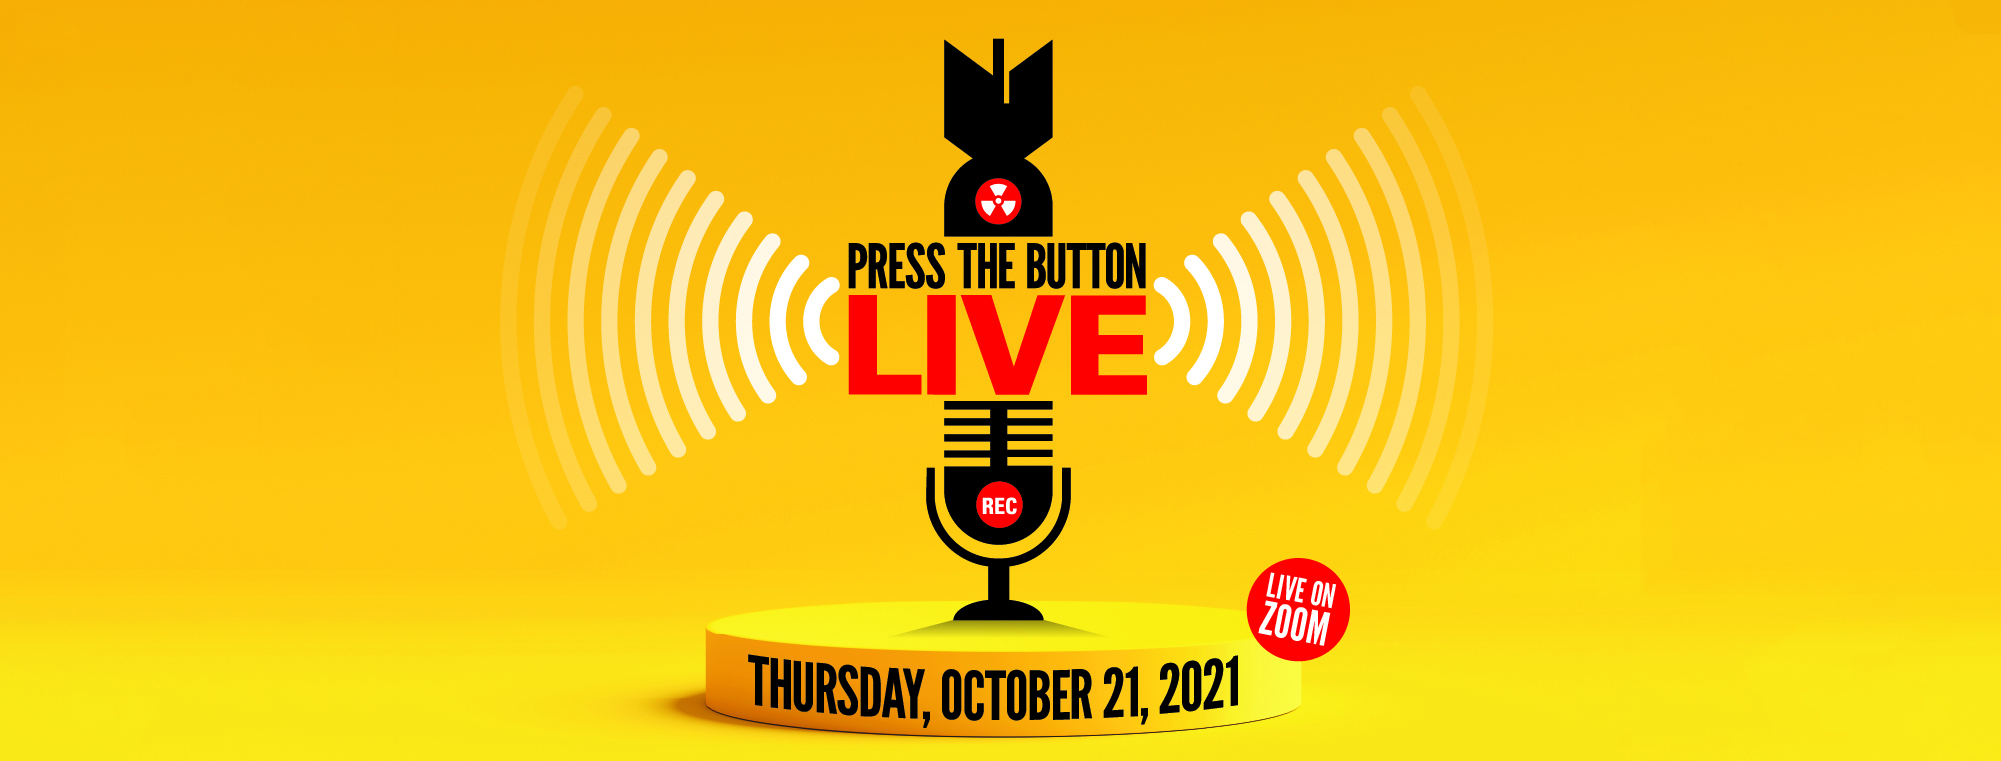 Press the Button Live Oct 21